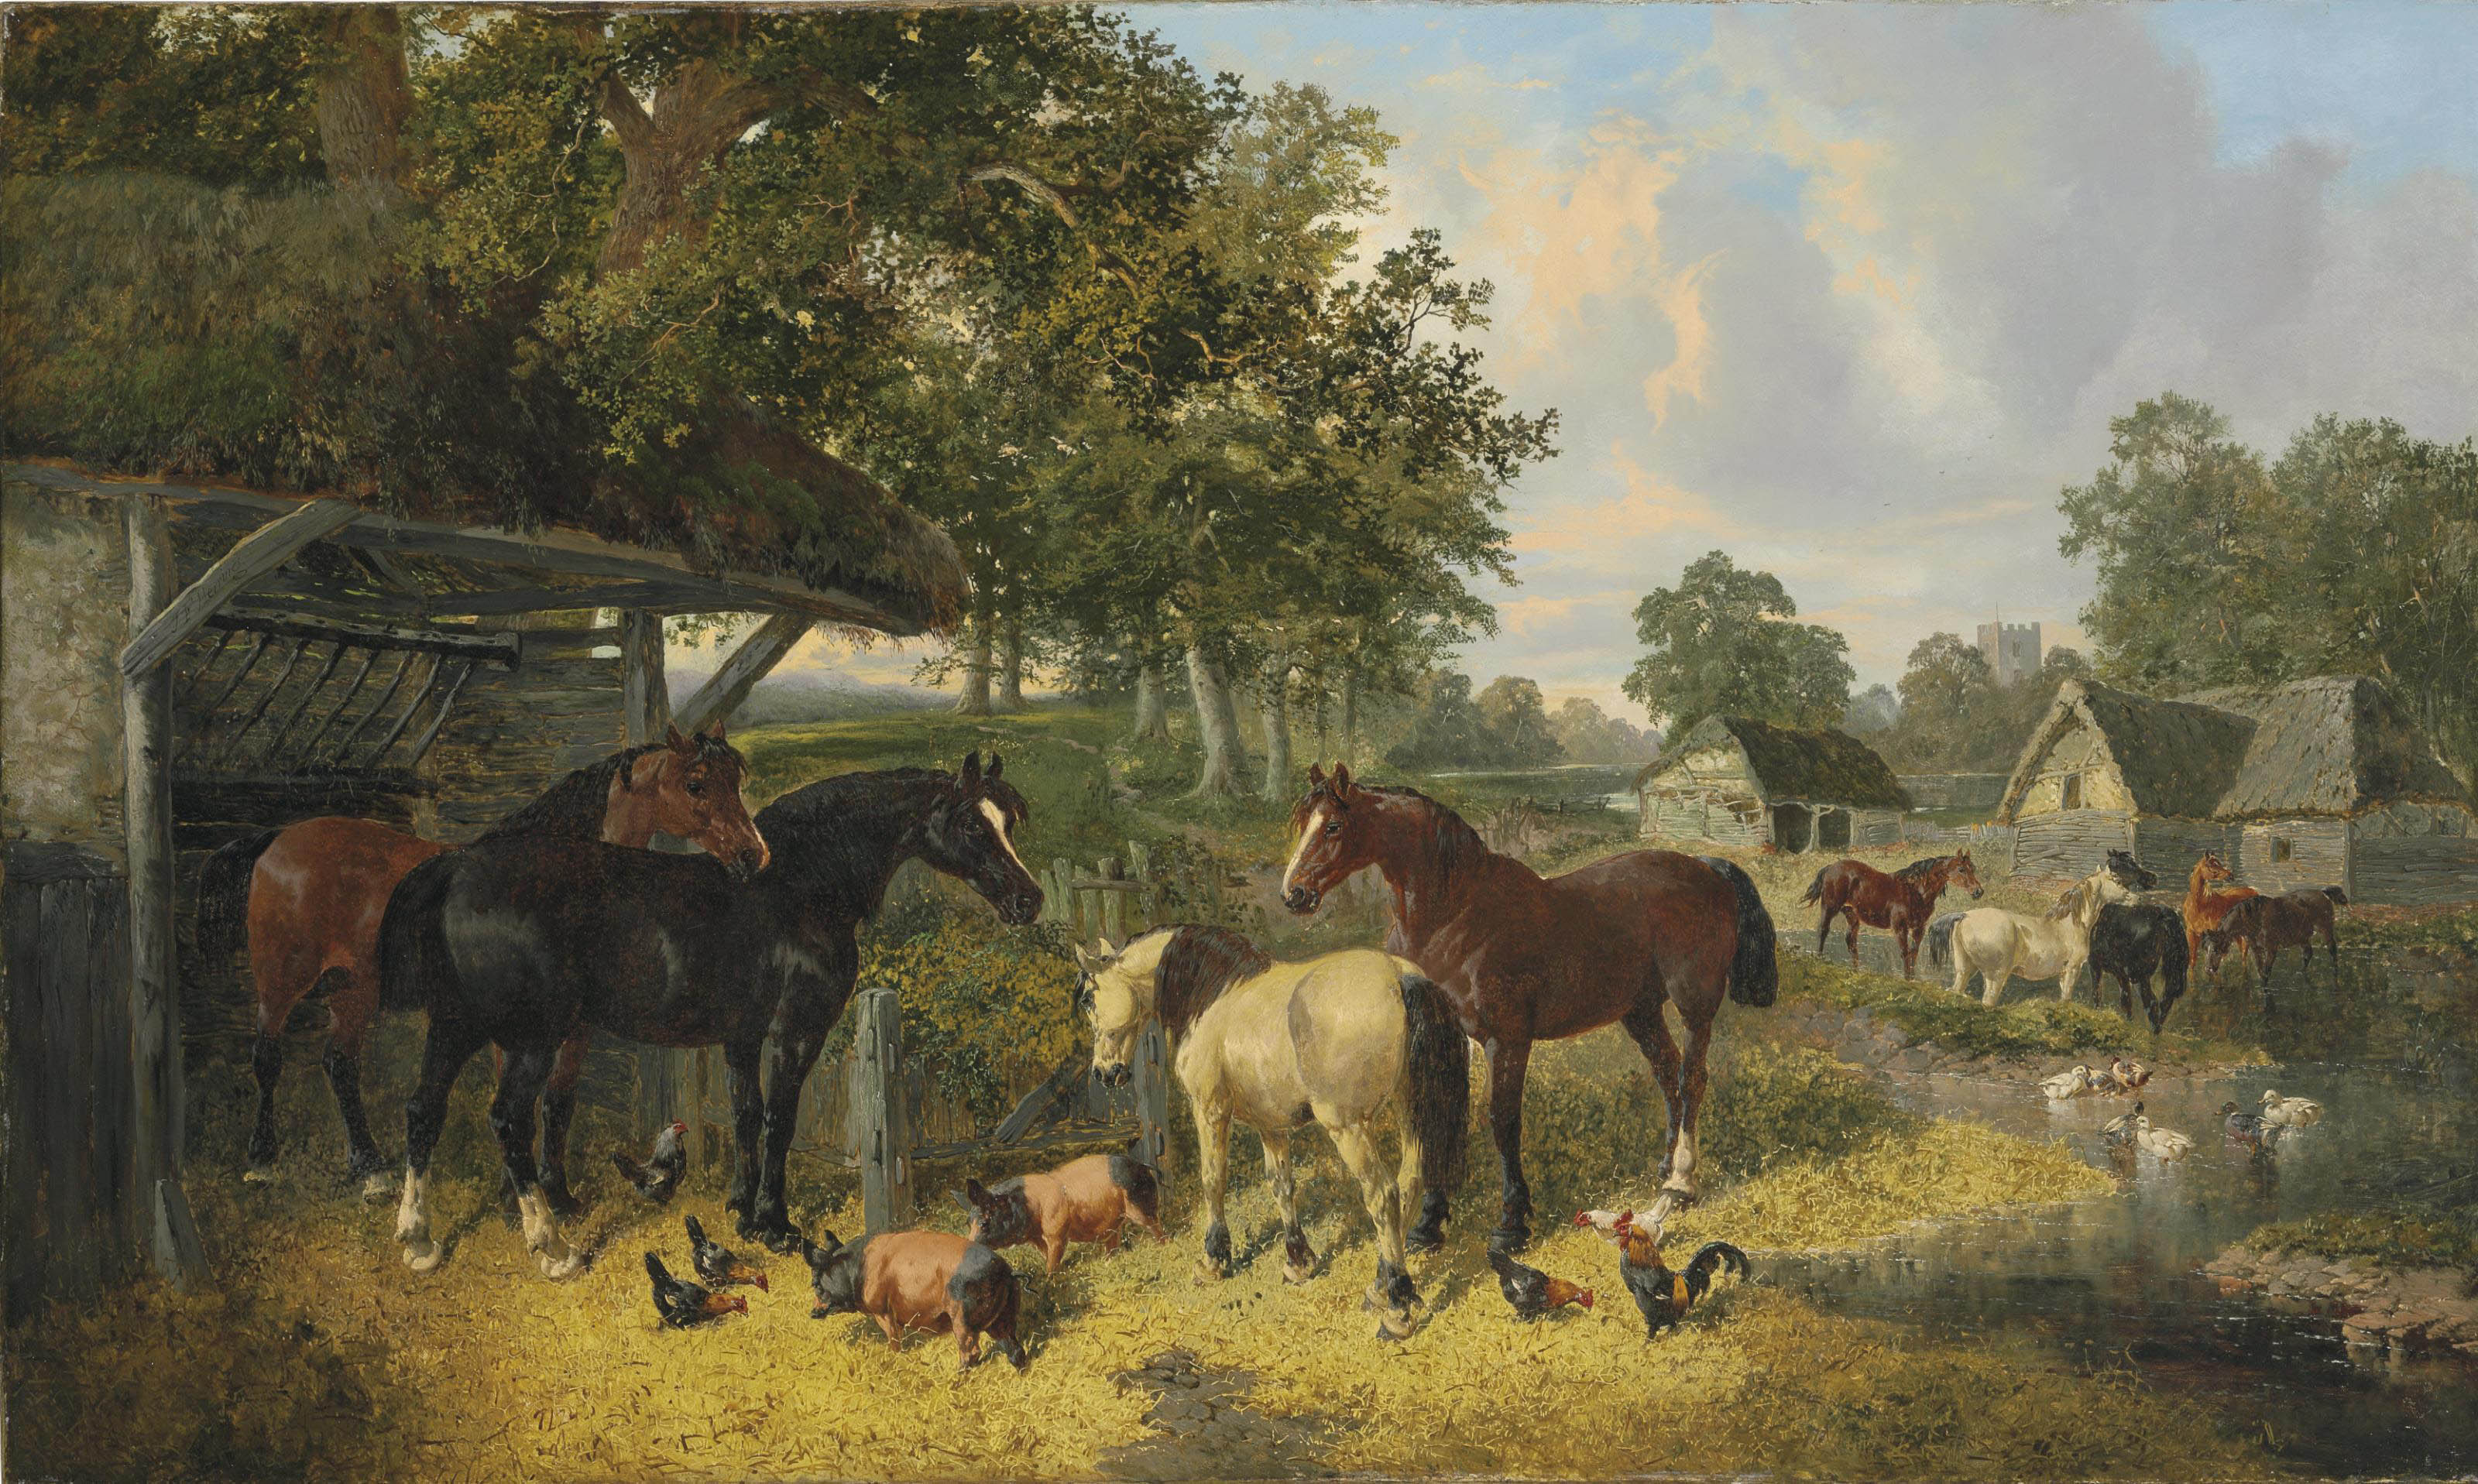 Horses, Pigs and Chickens in a Farmyard